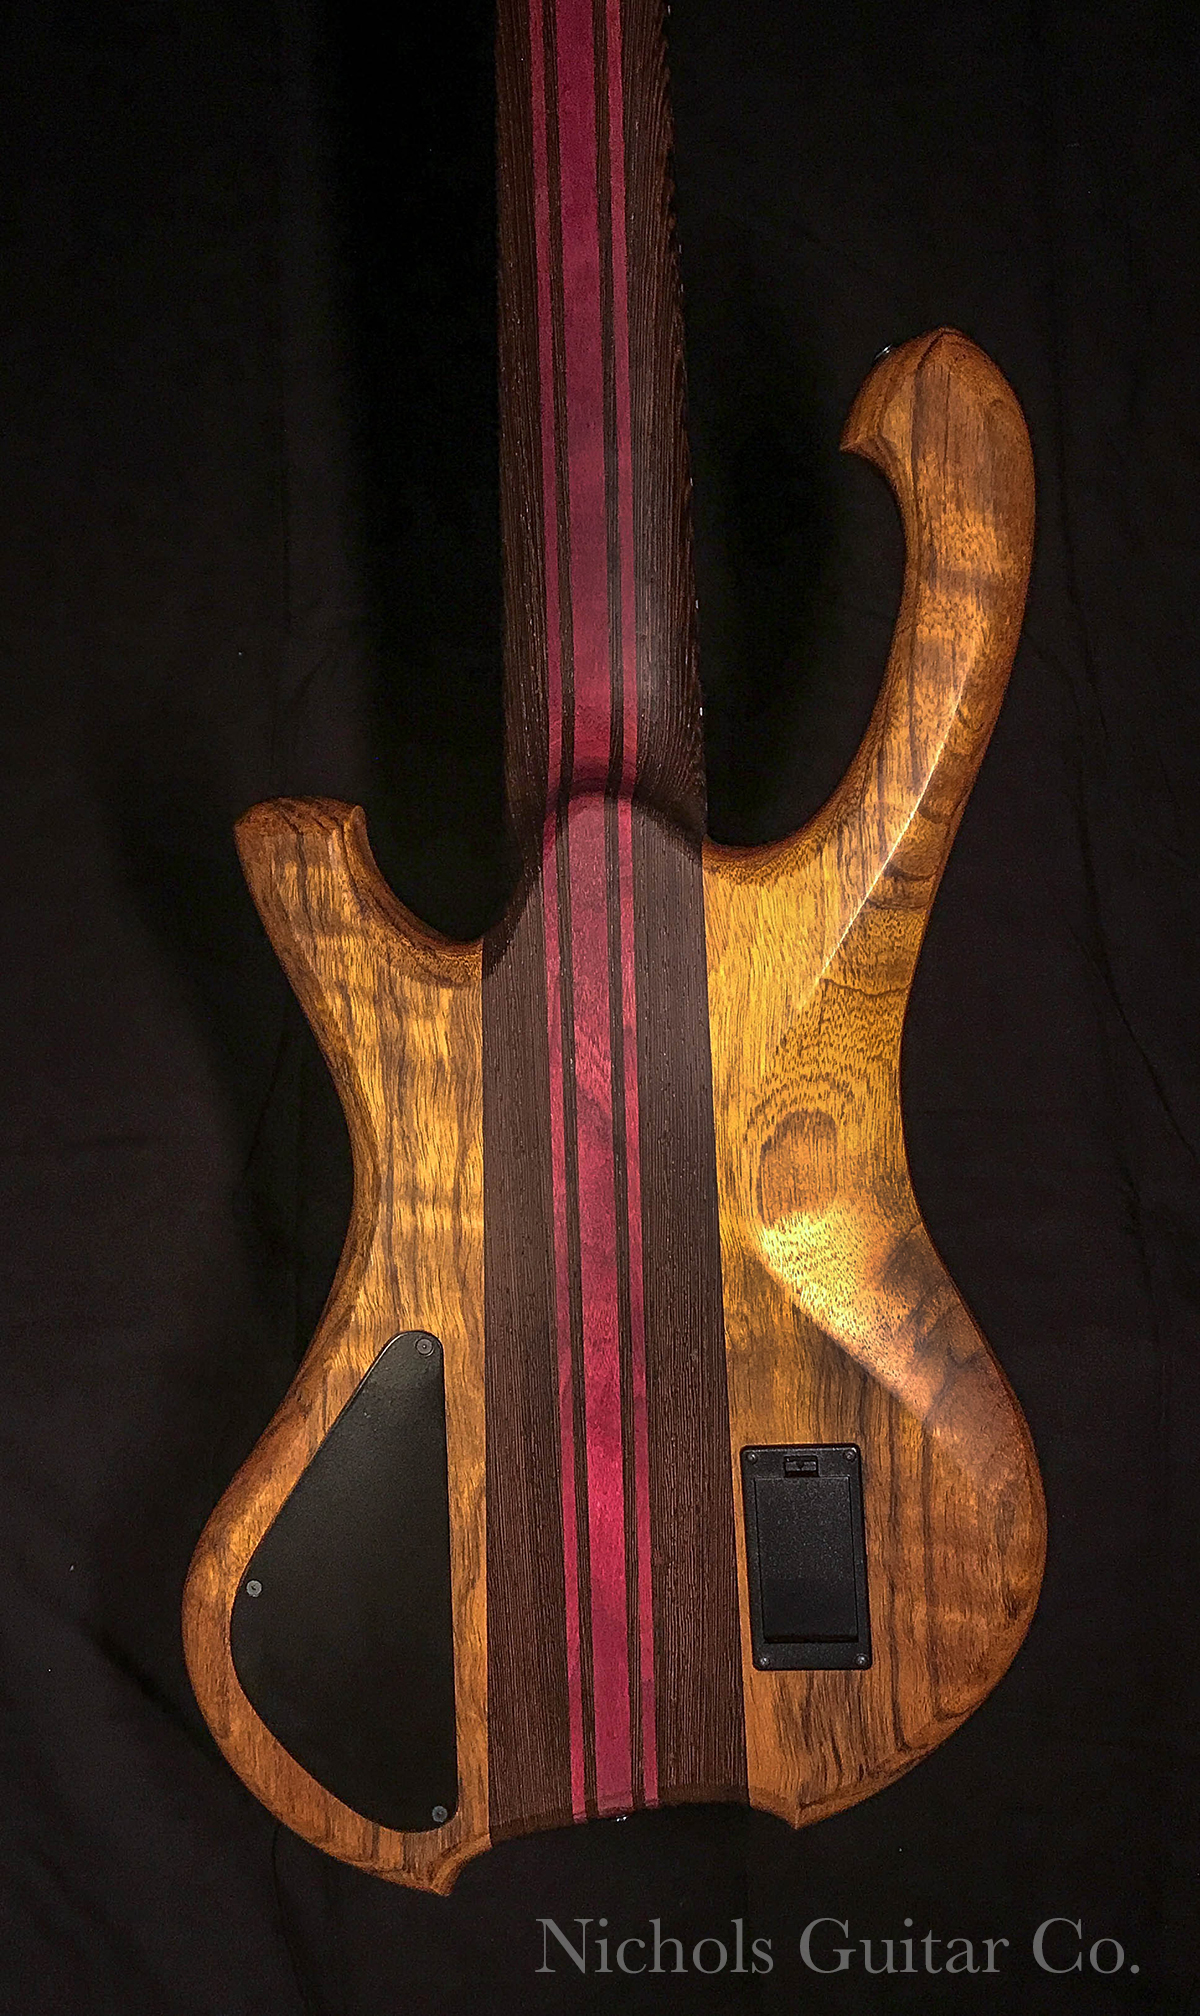 NGCo Gene back side